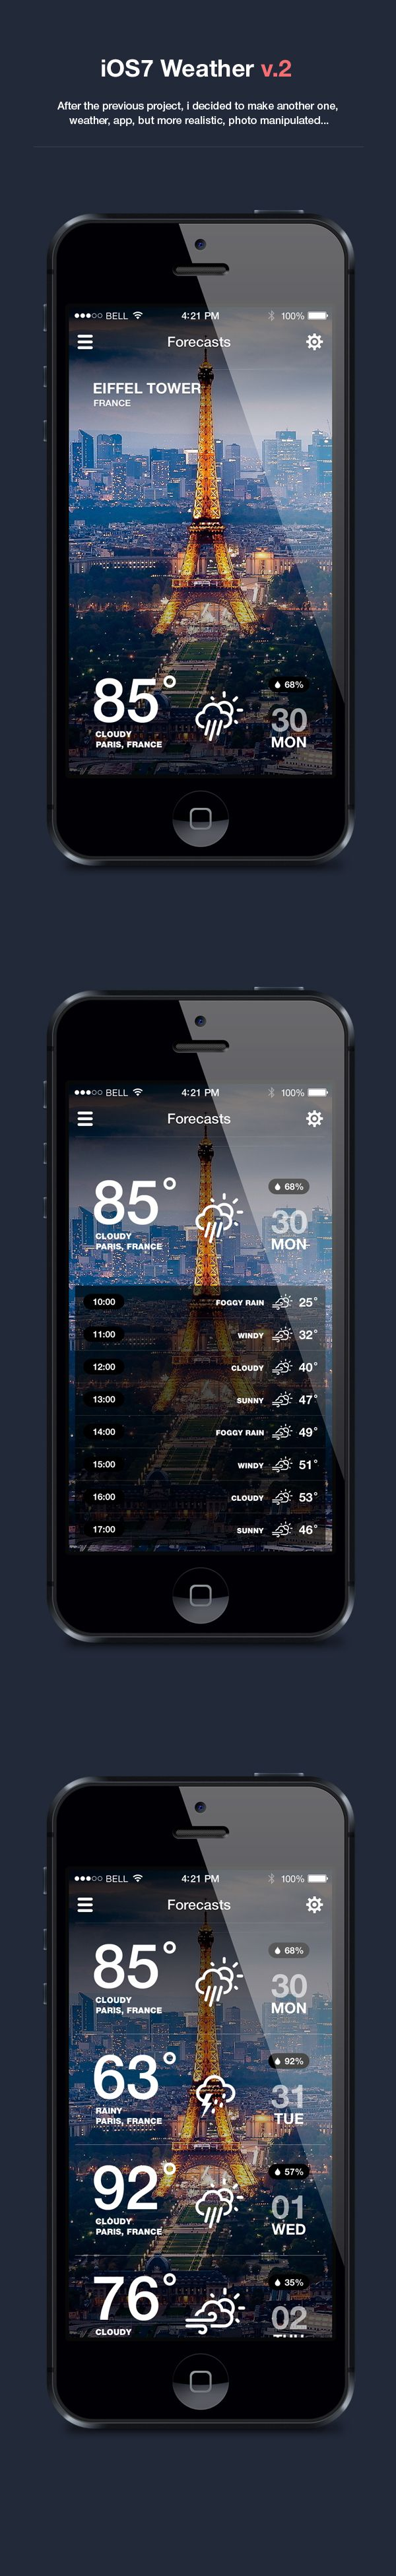 iOS7 Weather App v.2 by Dmitriy Haraberush, via Behance